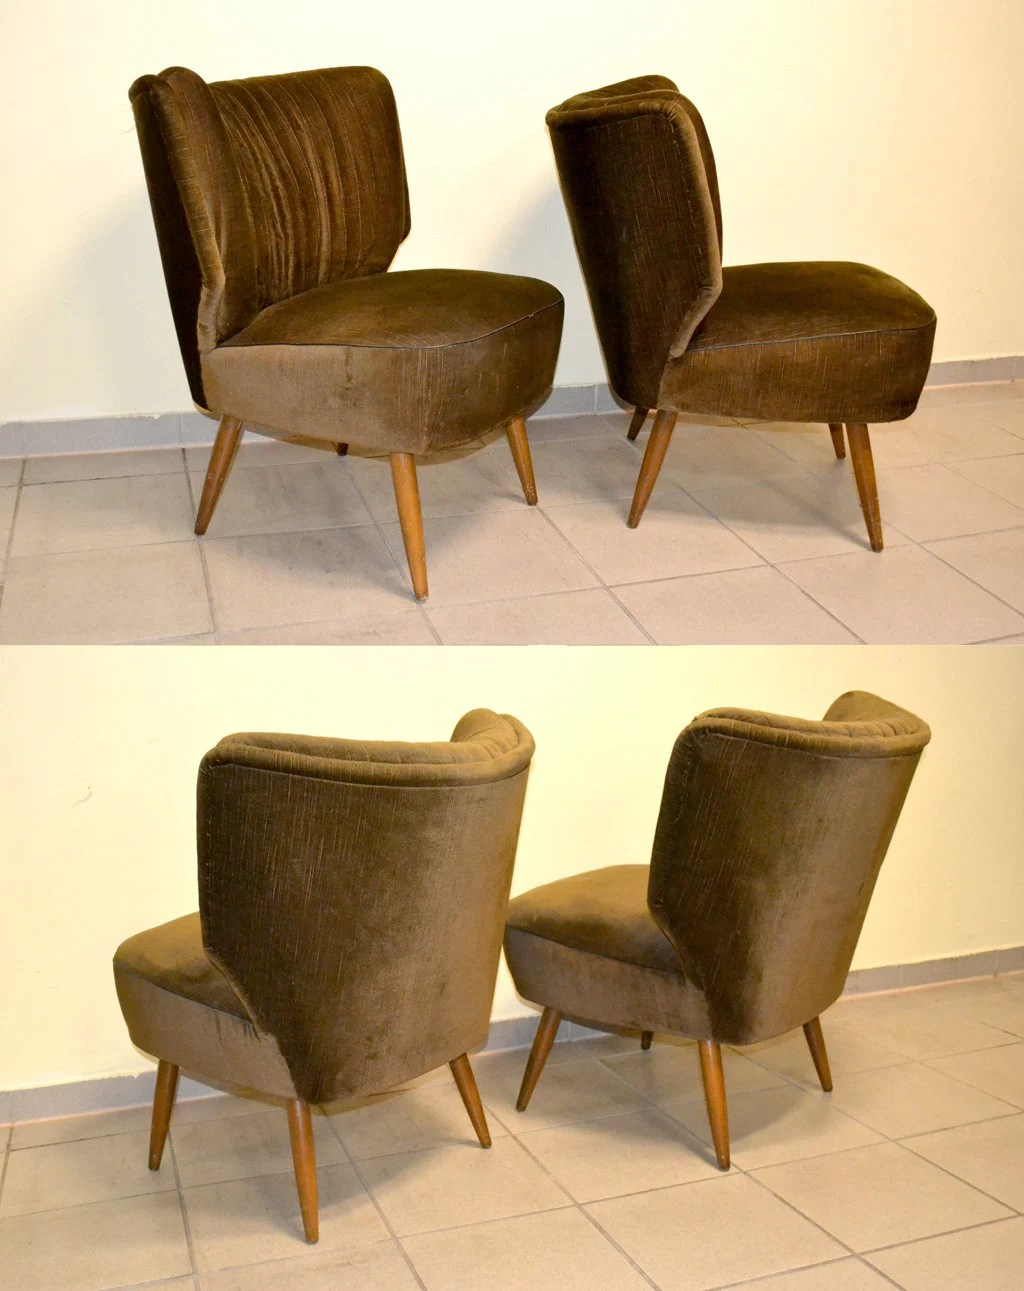 Cocktailsessel 50er 2 Cocktailsessel 50er 60er Vintage Chair Stuhl Armchair 1950 1960 Mid Century Design Rockabilly Clubsessel Lounge Sessel Living Room Club